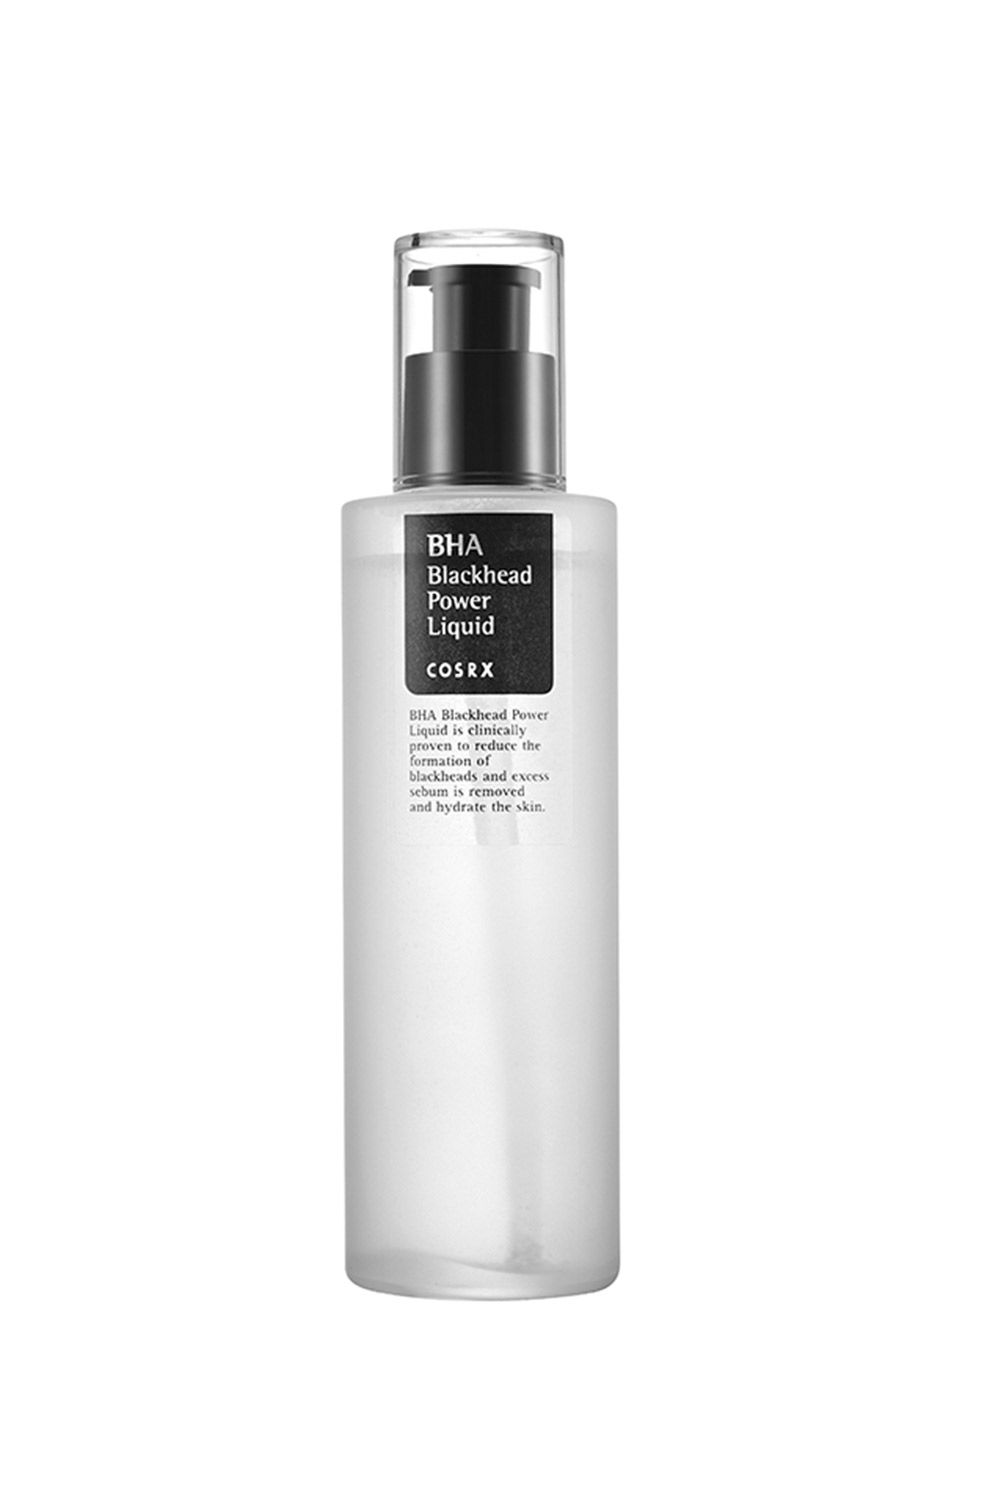 "<p>Fun fact: A choir of angels literally sings each time you unscrew the cap to this pore-clearing serum. Okay, not really, but the four-percent BHA (beta hydroxy acid) in this magical liquid will gently soften rough skin, dissolve blackheads, and fade dark spots with consistent nightly use.  </p><p><i data-redactor-tag=""i"">Cosrx BHA Blackhead Power Liquid, $15</i><strong data-redactor-tag=""strong""></strong></p><p><strong data-redactor-tag=""strong"">BUY IT: <a href=""https://www.amazon.com/Cosrx-Bha-Blackhead-Power-Liquid/dp/B00OZEJ8R8"">amazon.com</a>.</strong></p>"